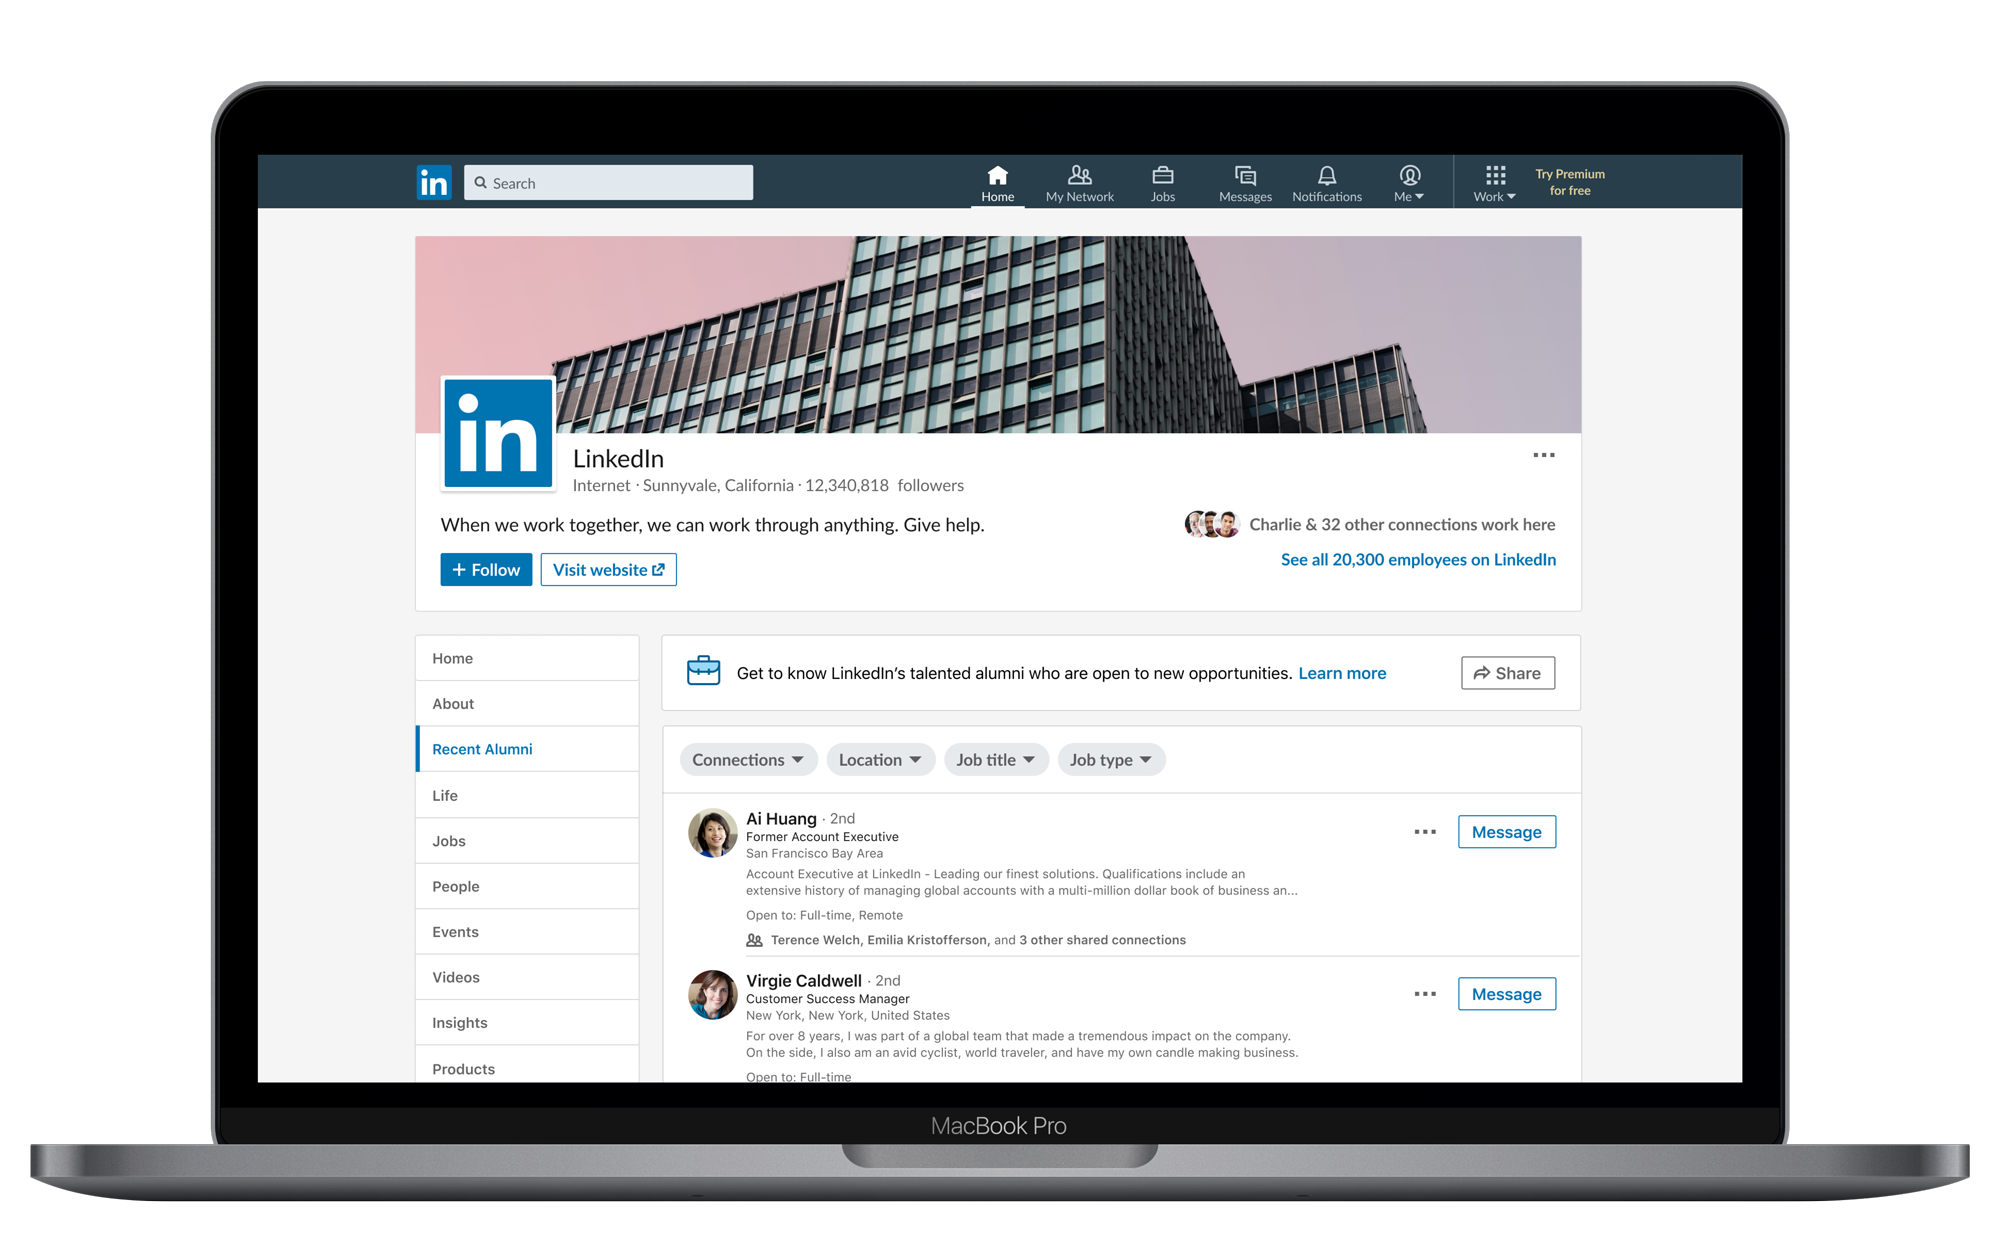 List of LinkedIn alumni on LinkedIn company page